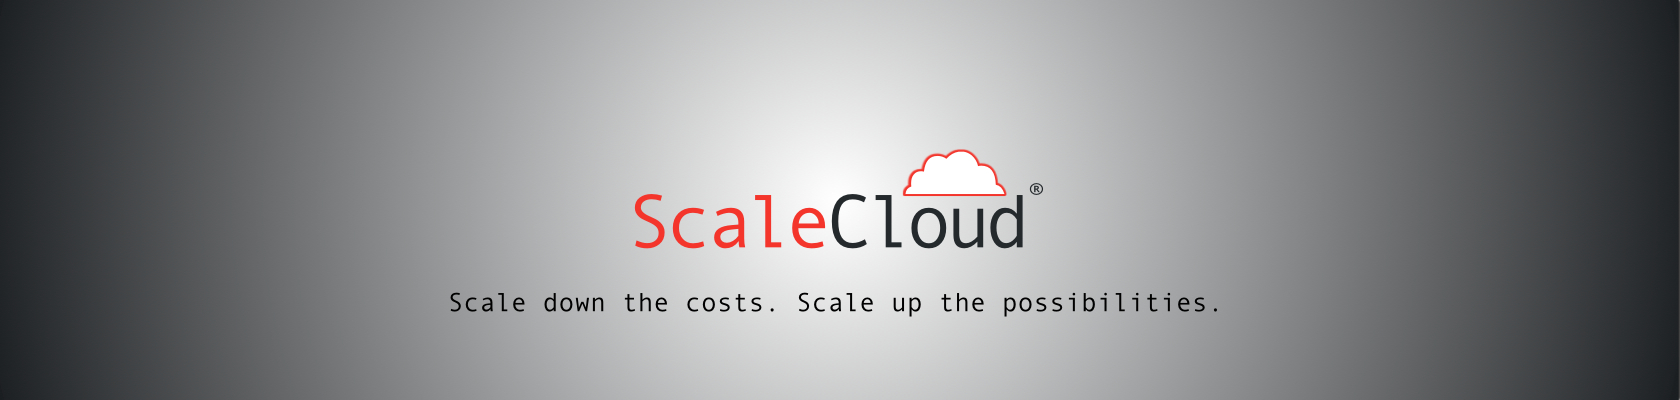 scalecloud-logo-v4_1680x400_slider